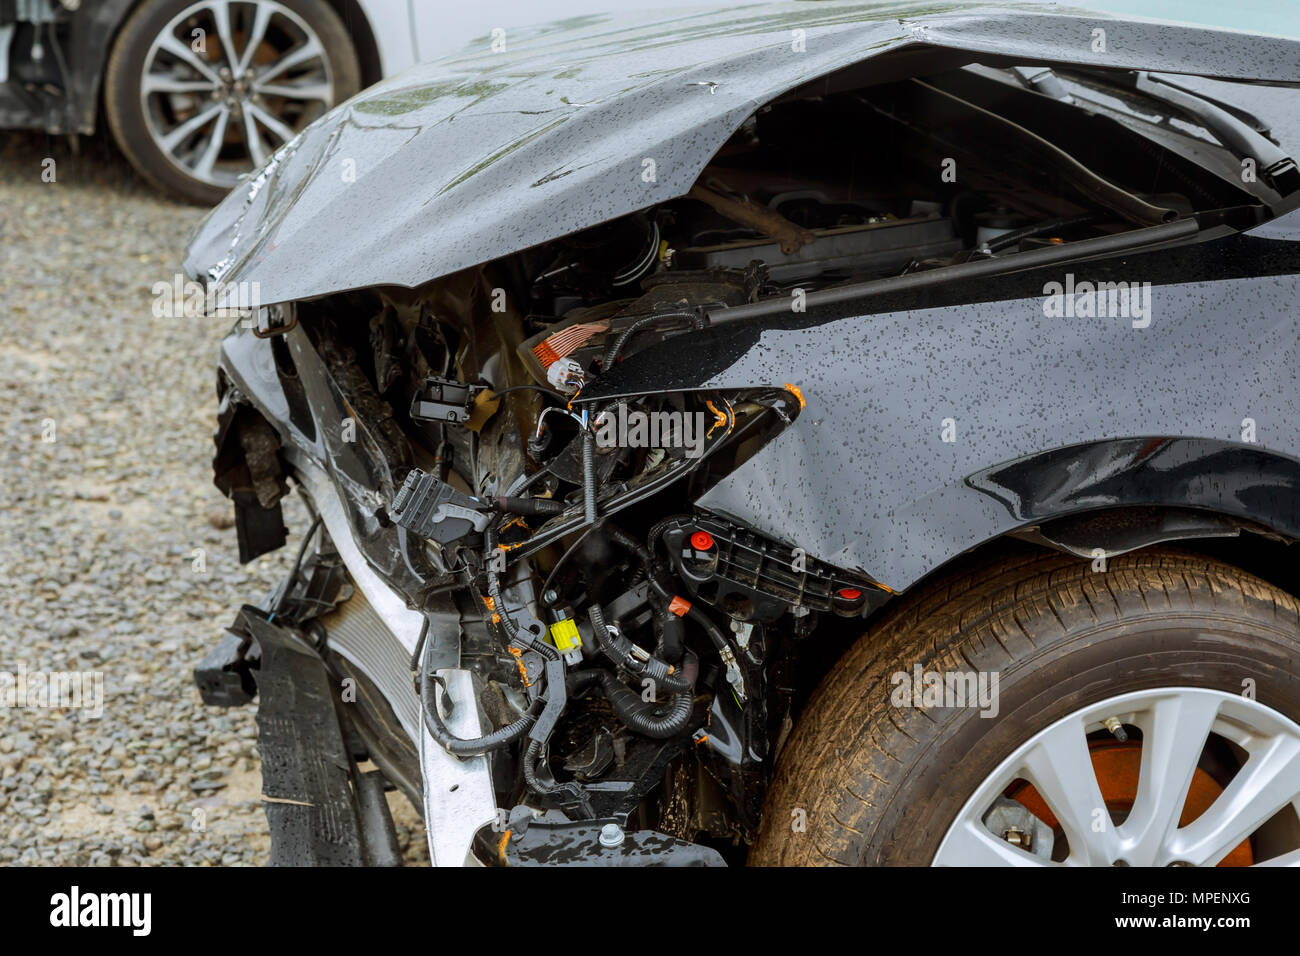 Broken car after accident, view of car front down after an explosion, ready to be scrapped Stock Photo